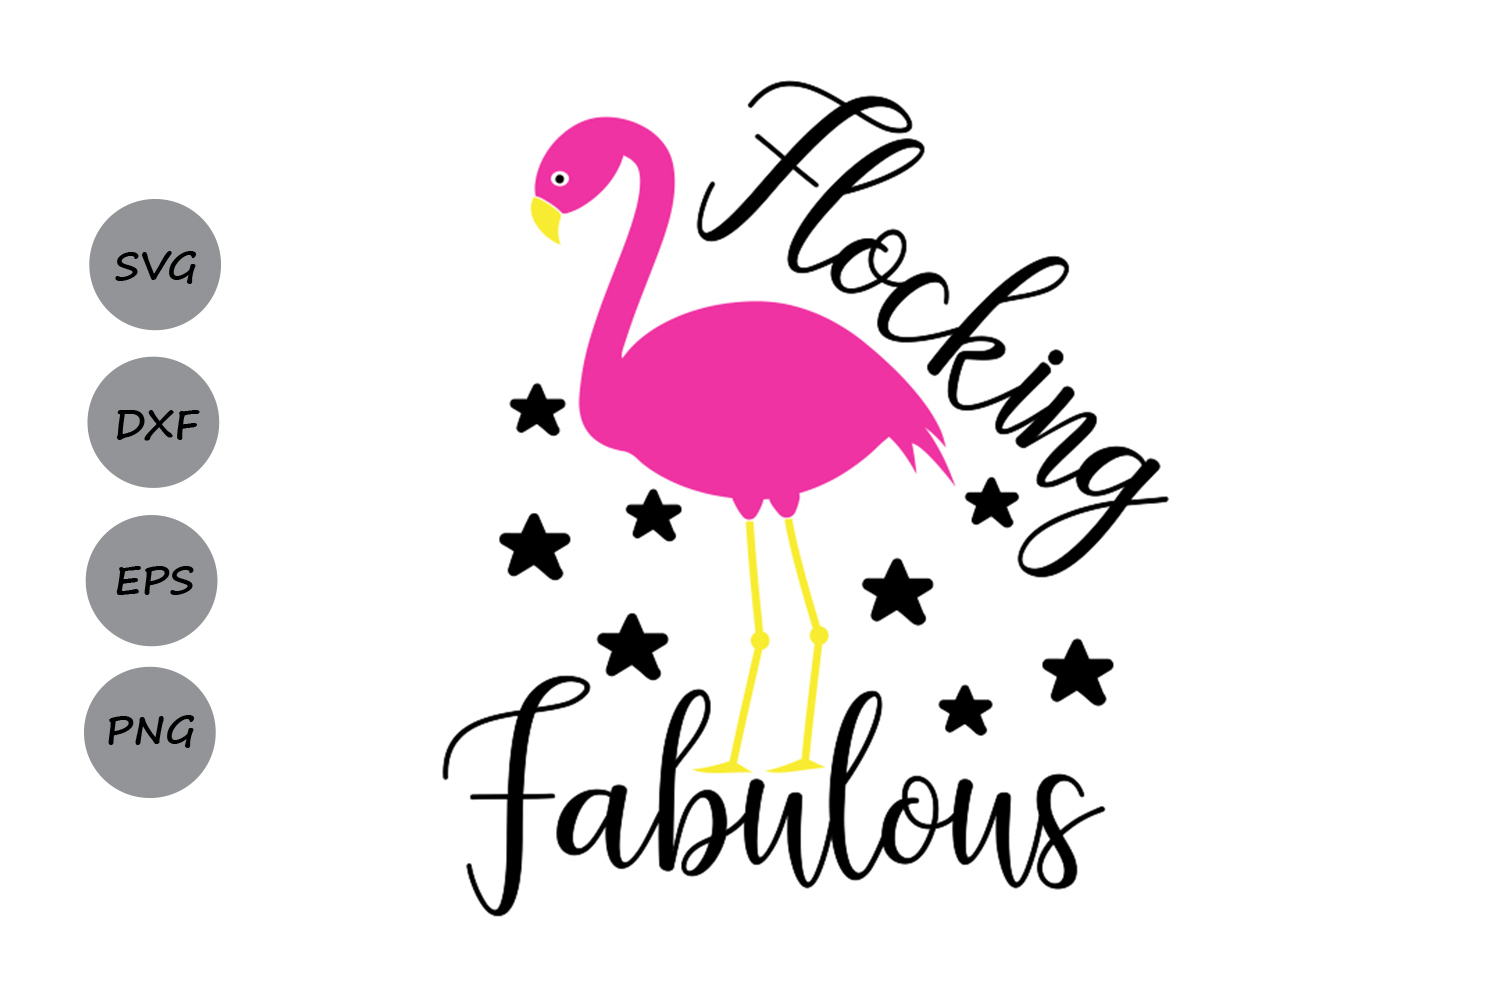 Download Free Flocking Fabulous Graphic By Cosmosfineart Creative Fabrica for Cricut Explore, Silhouette and other cutting machines.